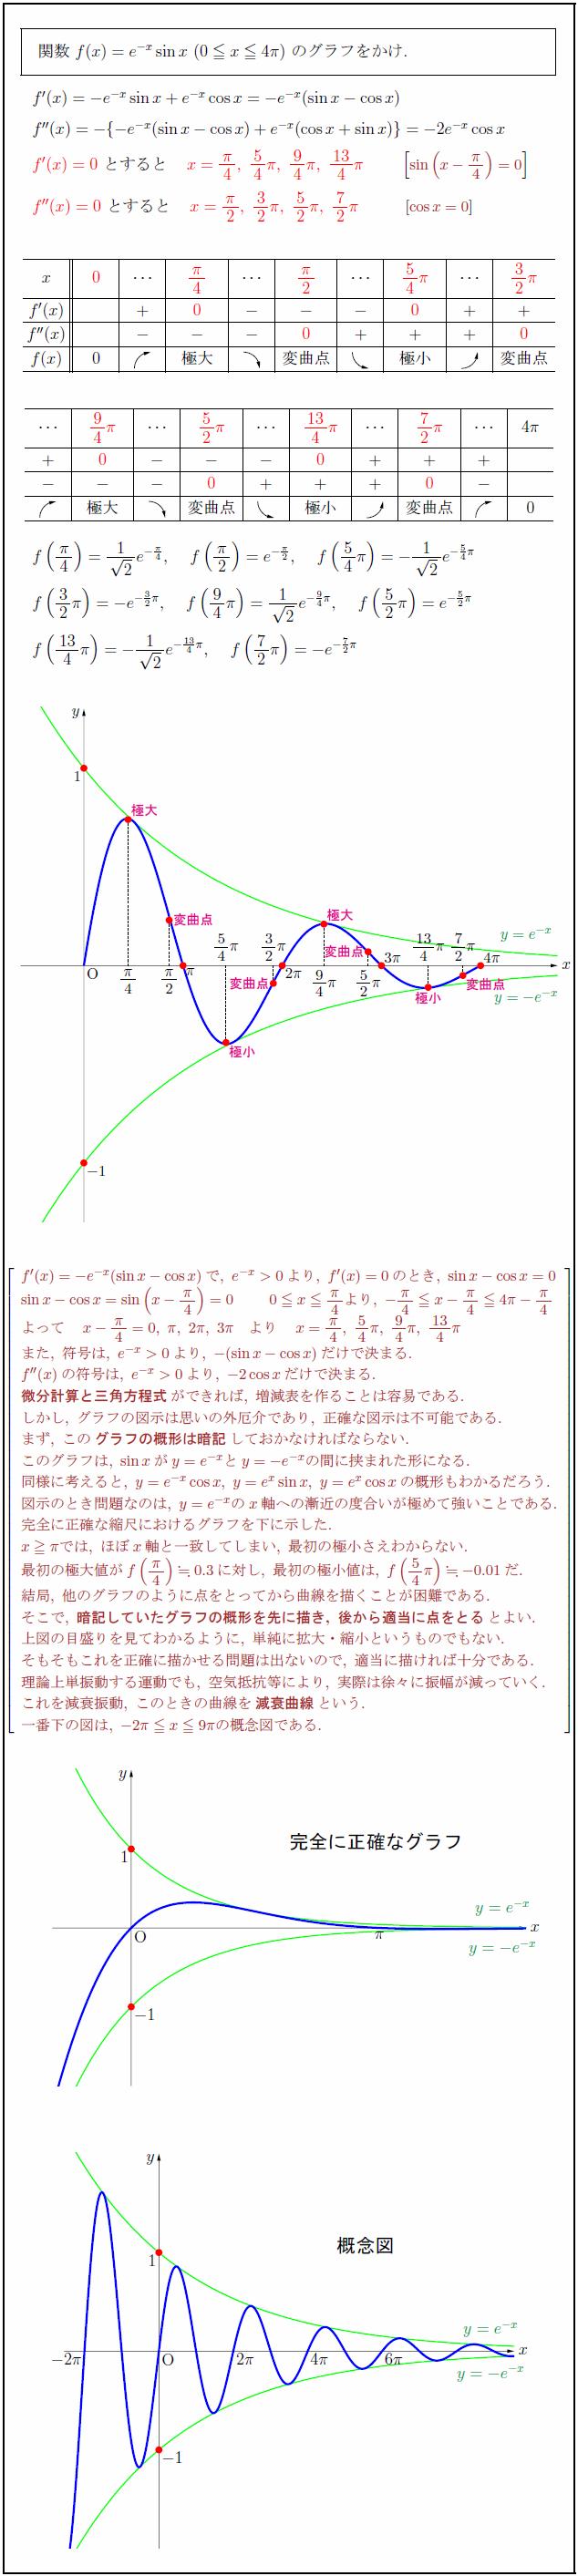 decay-curve